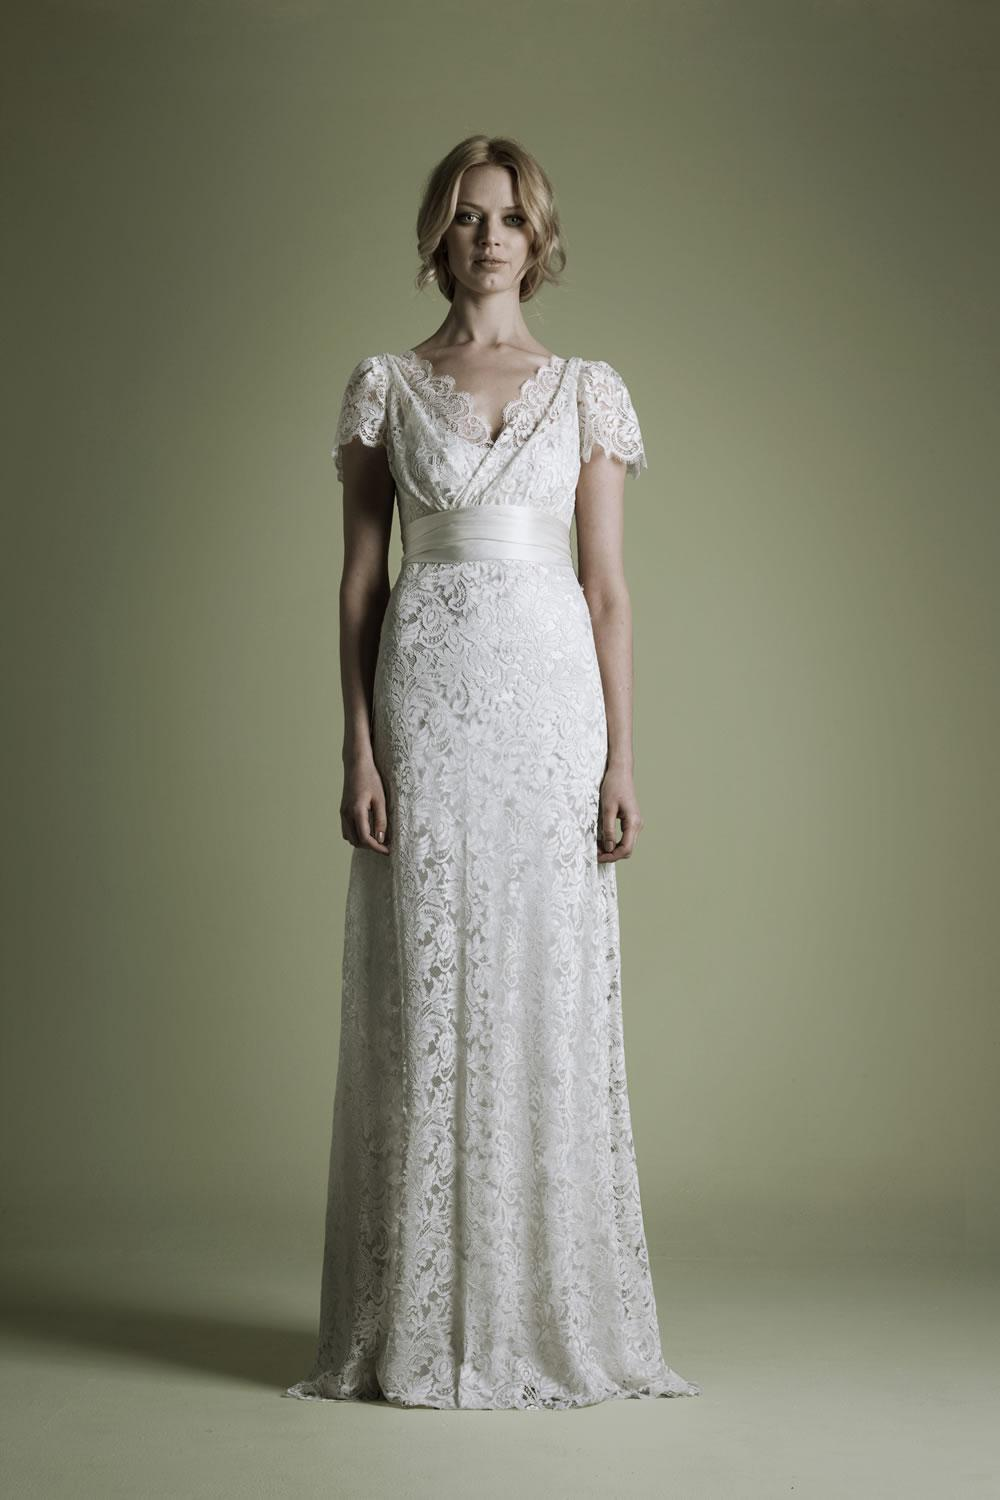 The Vintage Wedding Dress